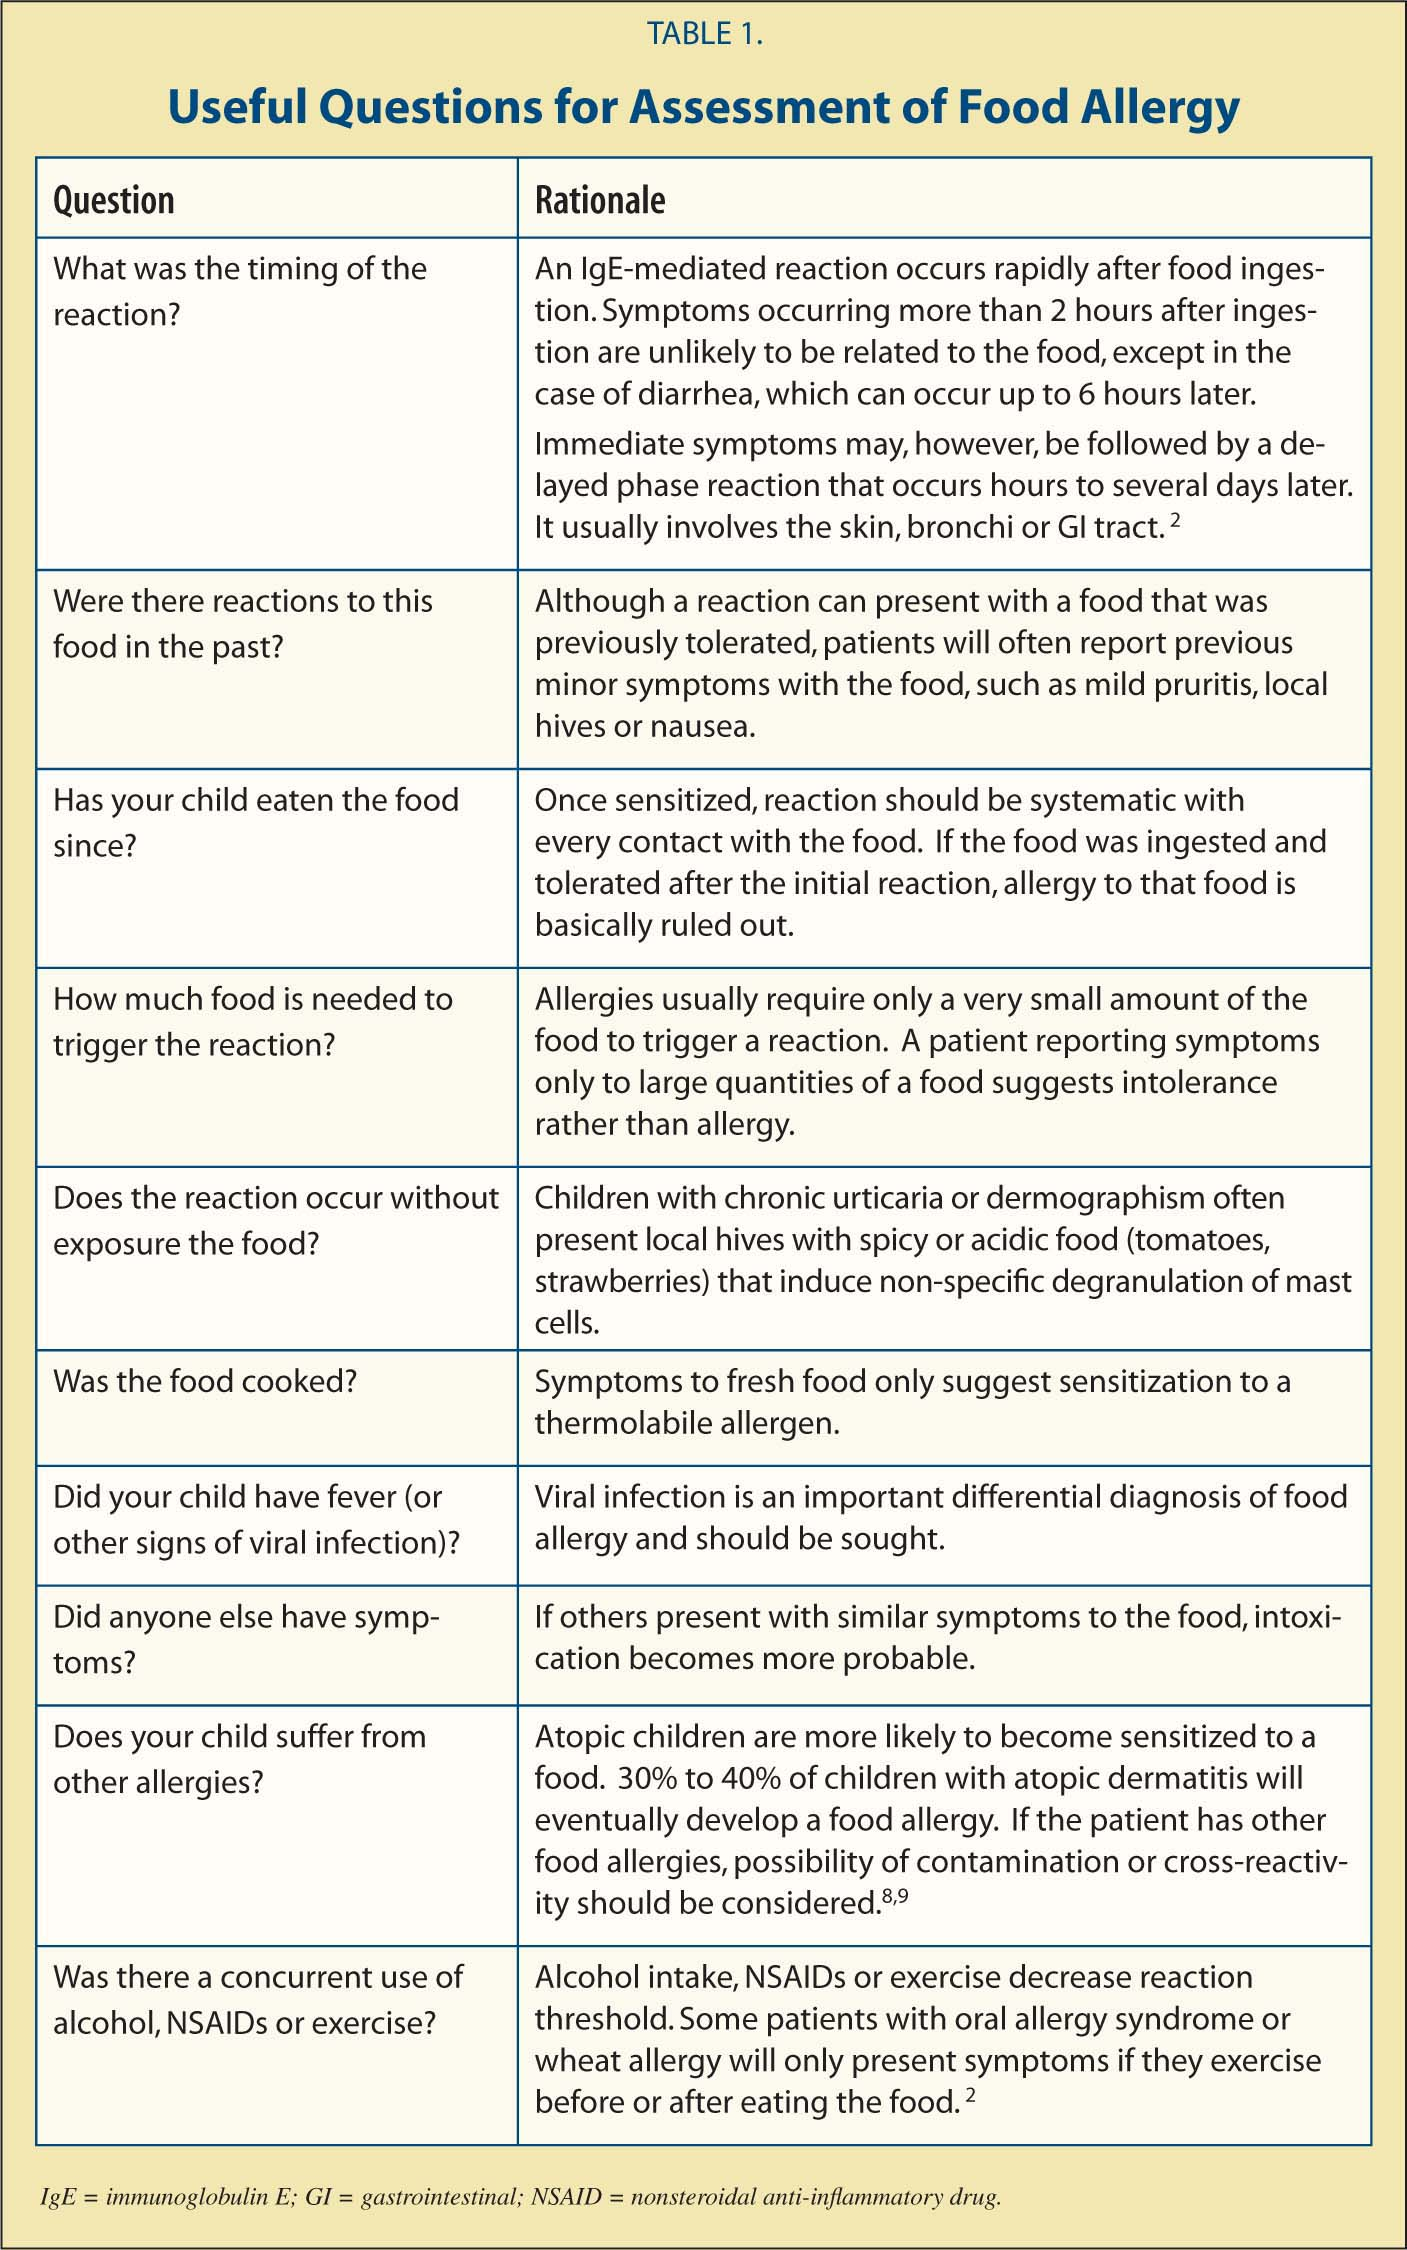 Useful Questions for Assessment of Food Allergy